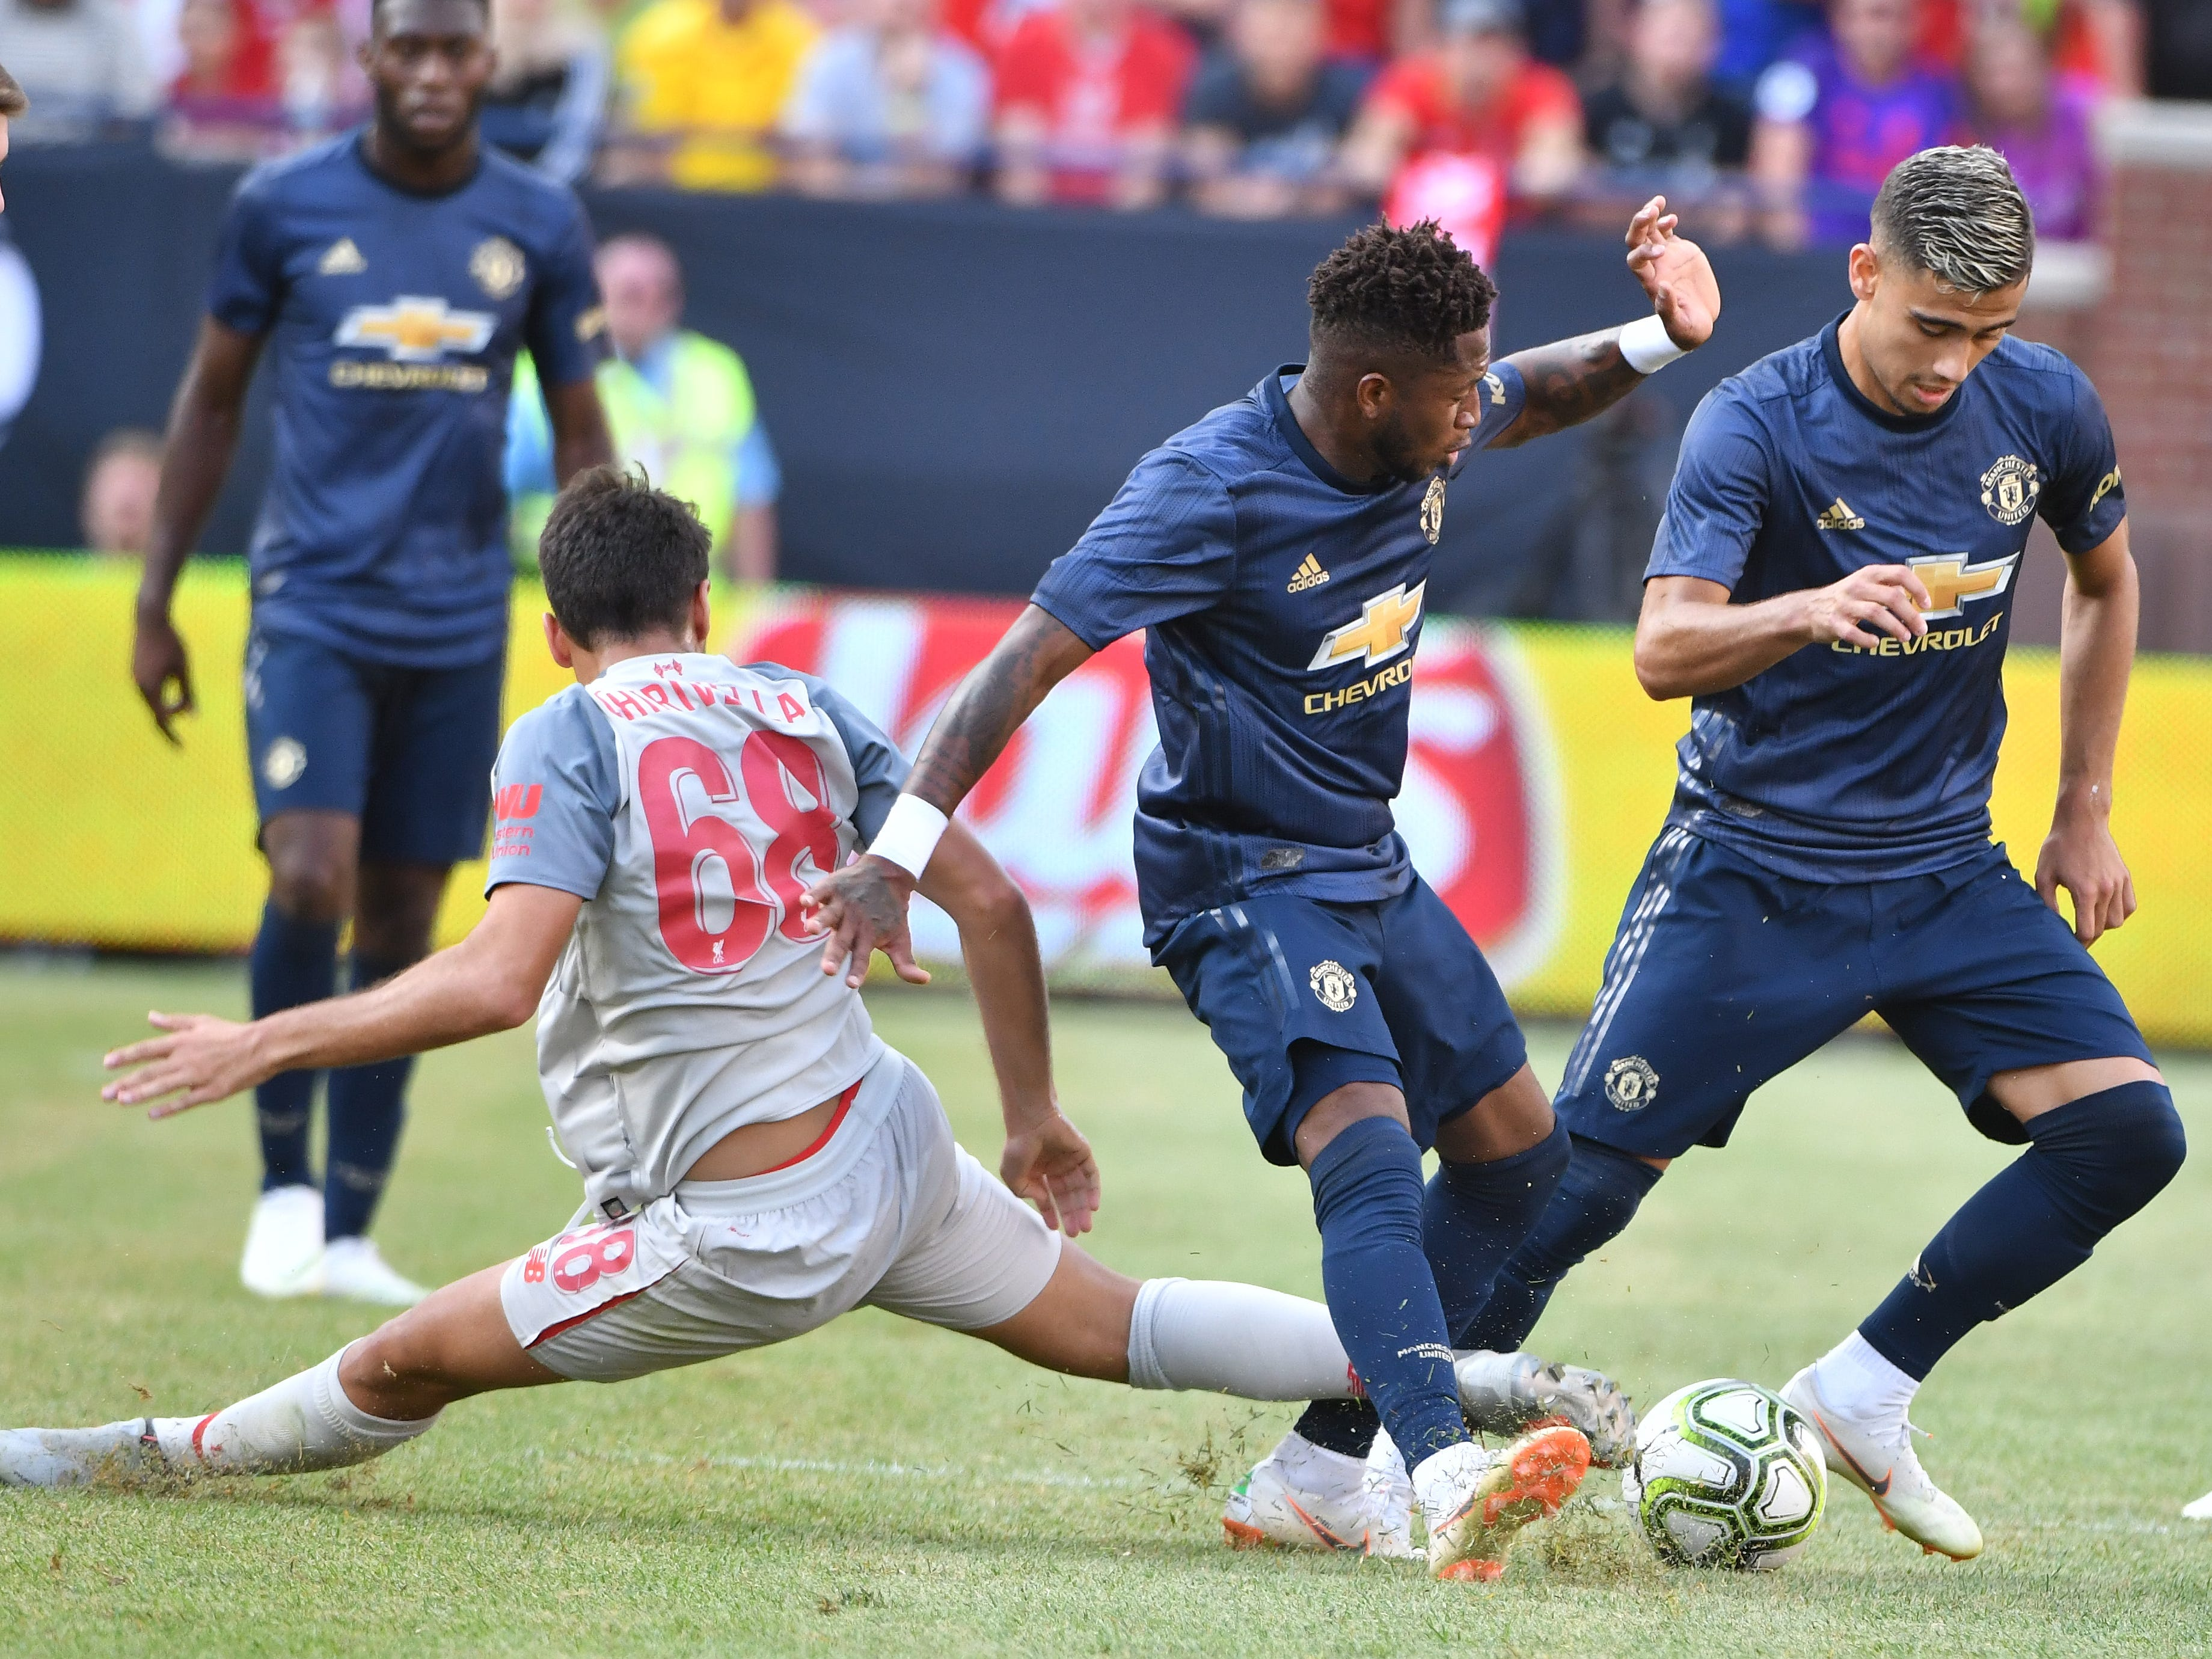 Liverpool's Pedro Chirivella defends against Manchester's Fred and Andreas Pereira in the second half.